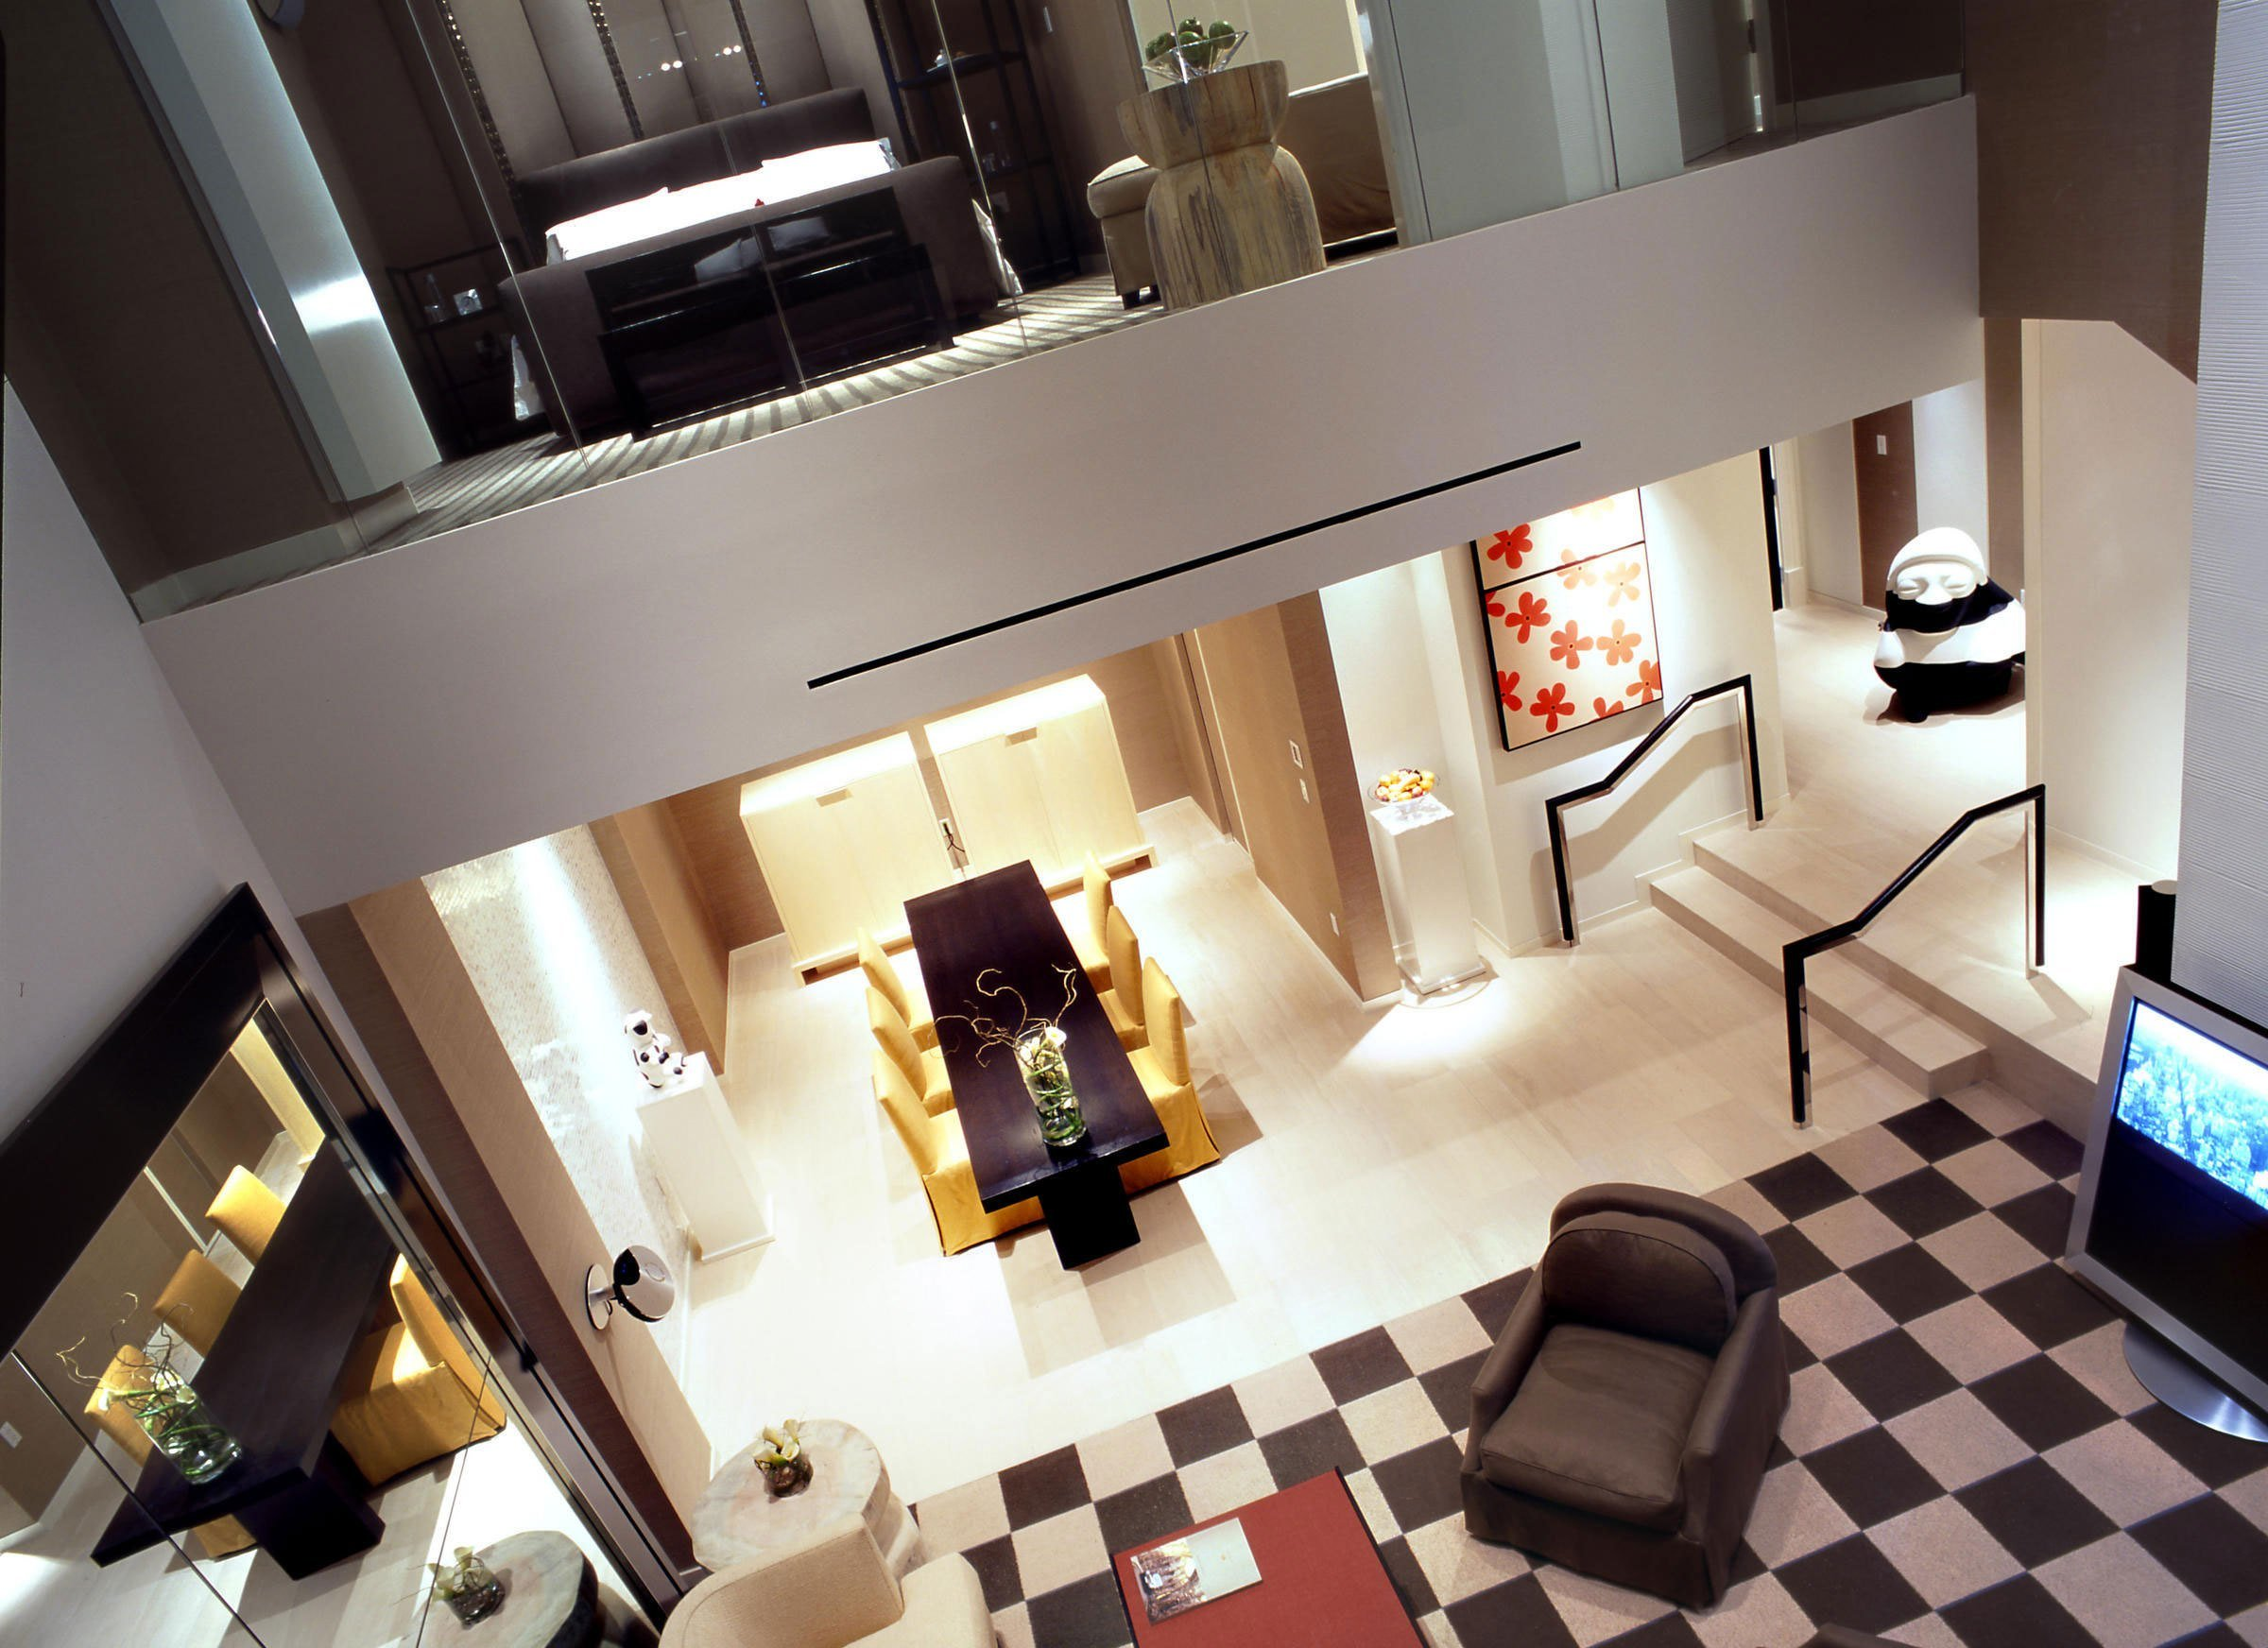 Best Mgm Grand Vegas Sky Loft Suite 33 000 Per Night Luxaholics With Pictures